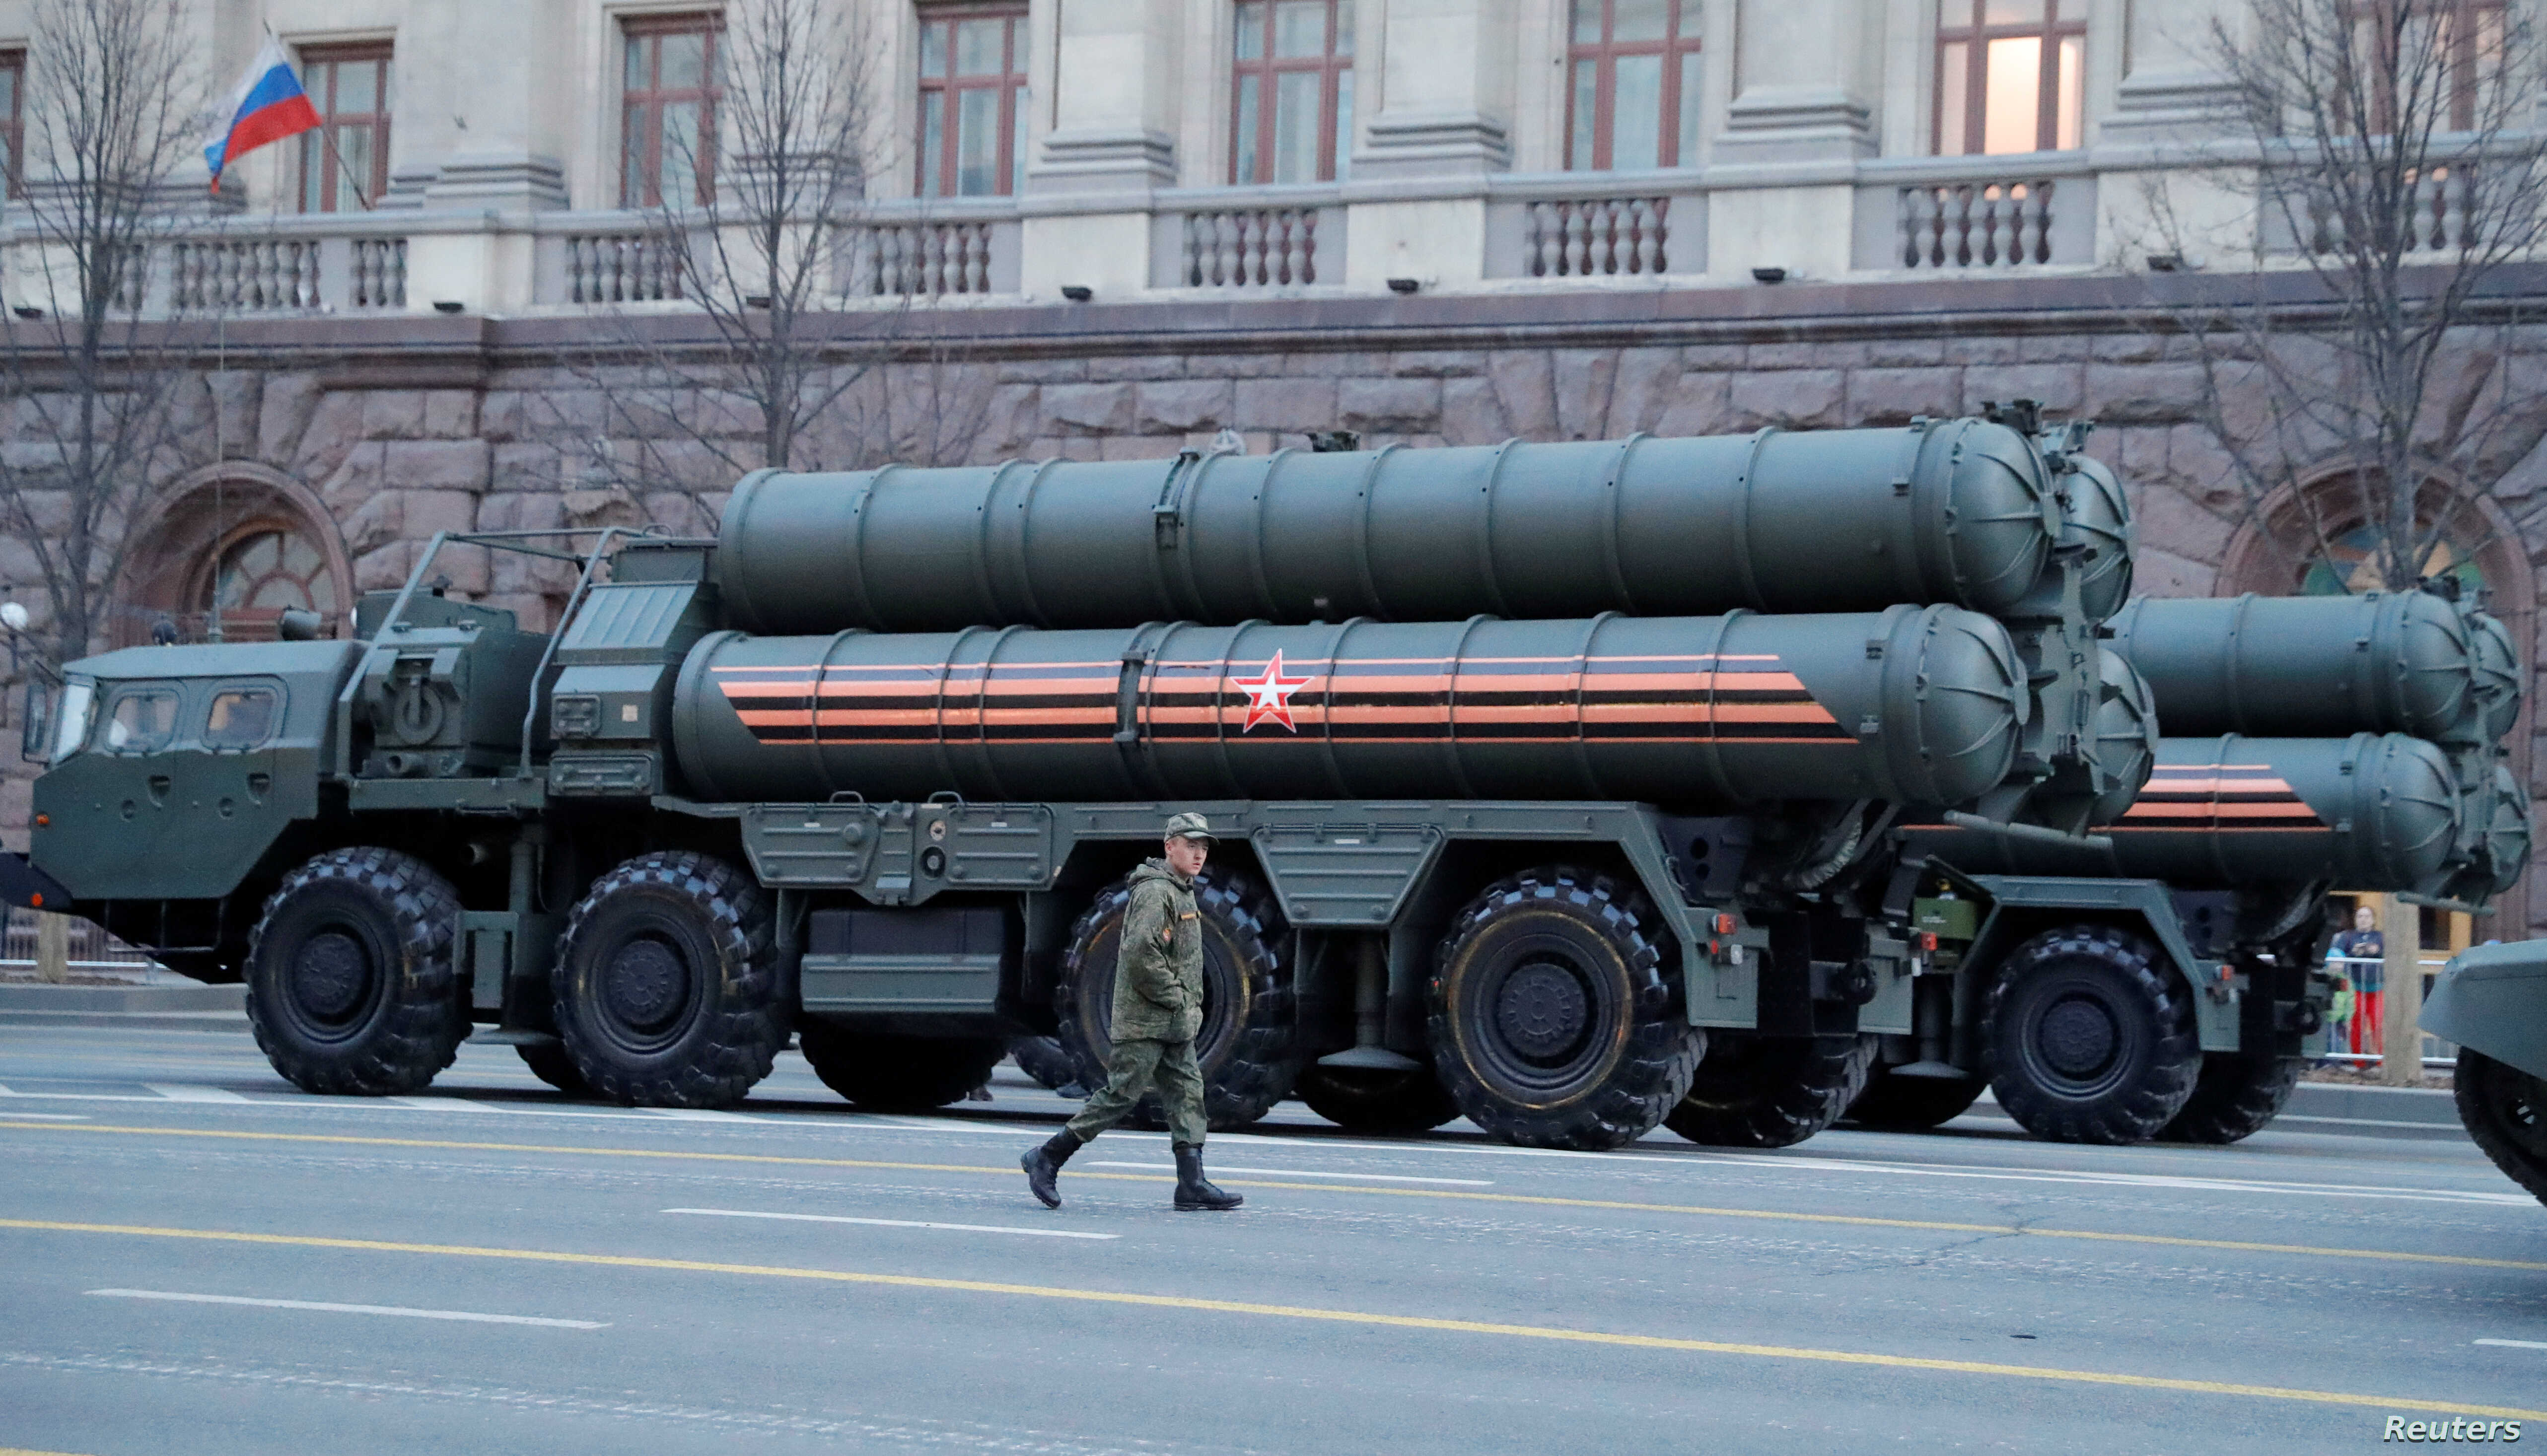 A Russian serviceman walks past S-400 missile defense systems in Tverskaya Street before a rehearsal for the Victory Day parade, which marks the anniversary of the victory over Nazi Germany in World War Two, in central Moscow, Russia, April 29, 2019. REUTERS/Tatyana Makeyeva - RC154CE7FE30